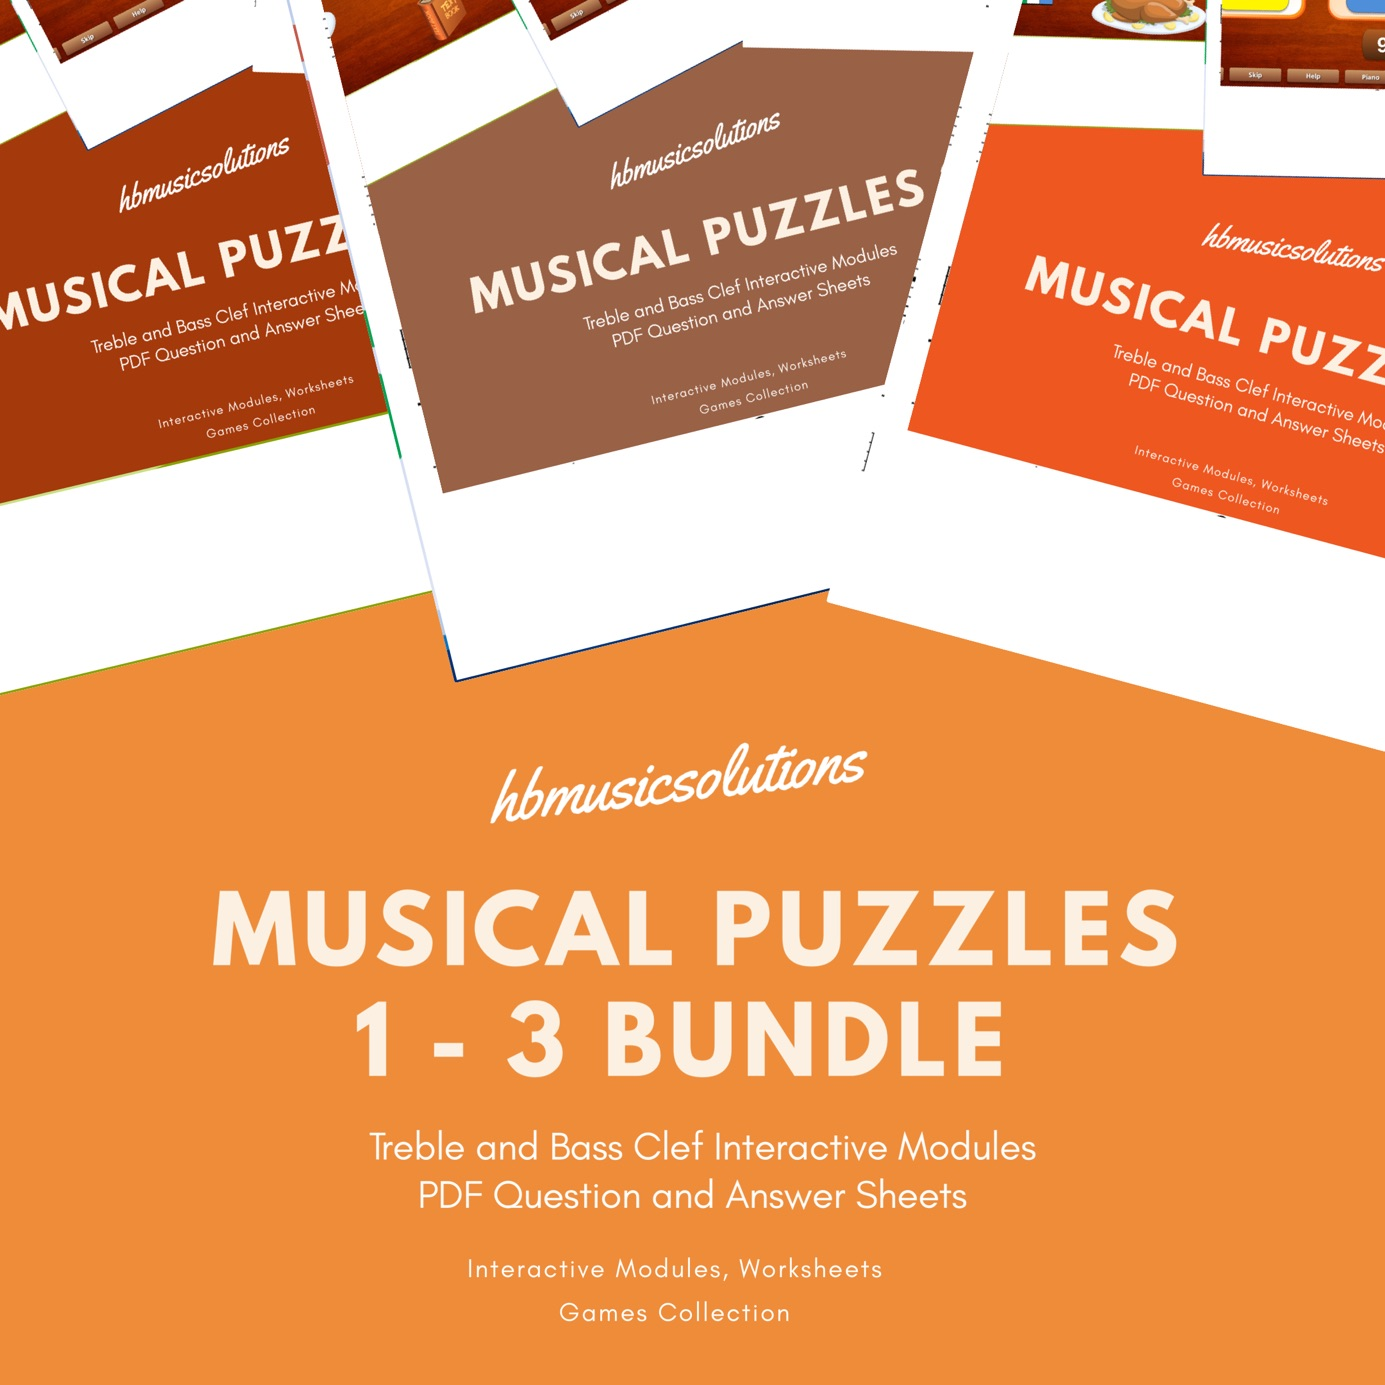 Musical Puzzles 1 -3 Bundle Treble and Bass Clef Interactive Modules and  Worksheets